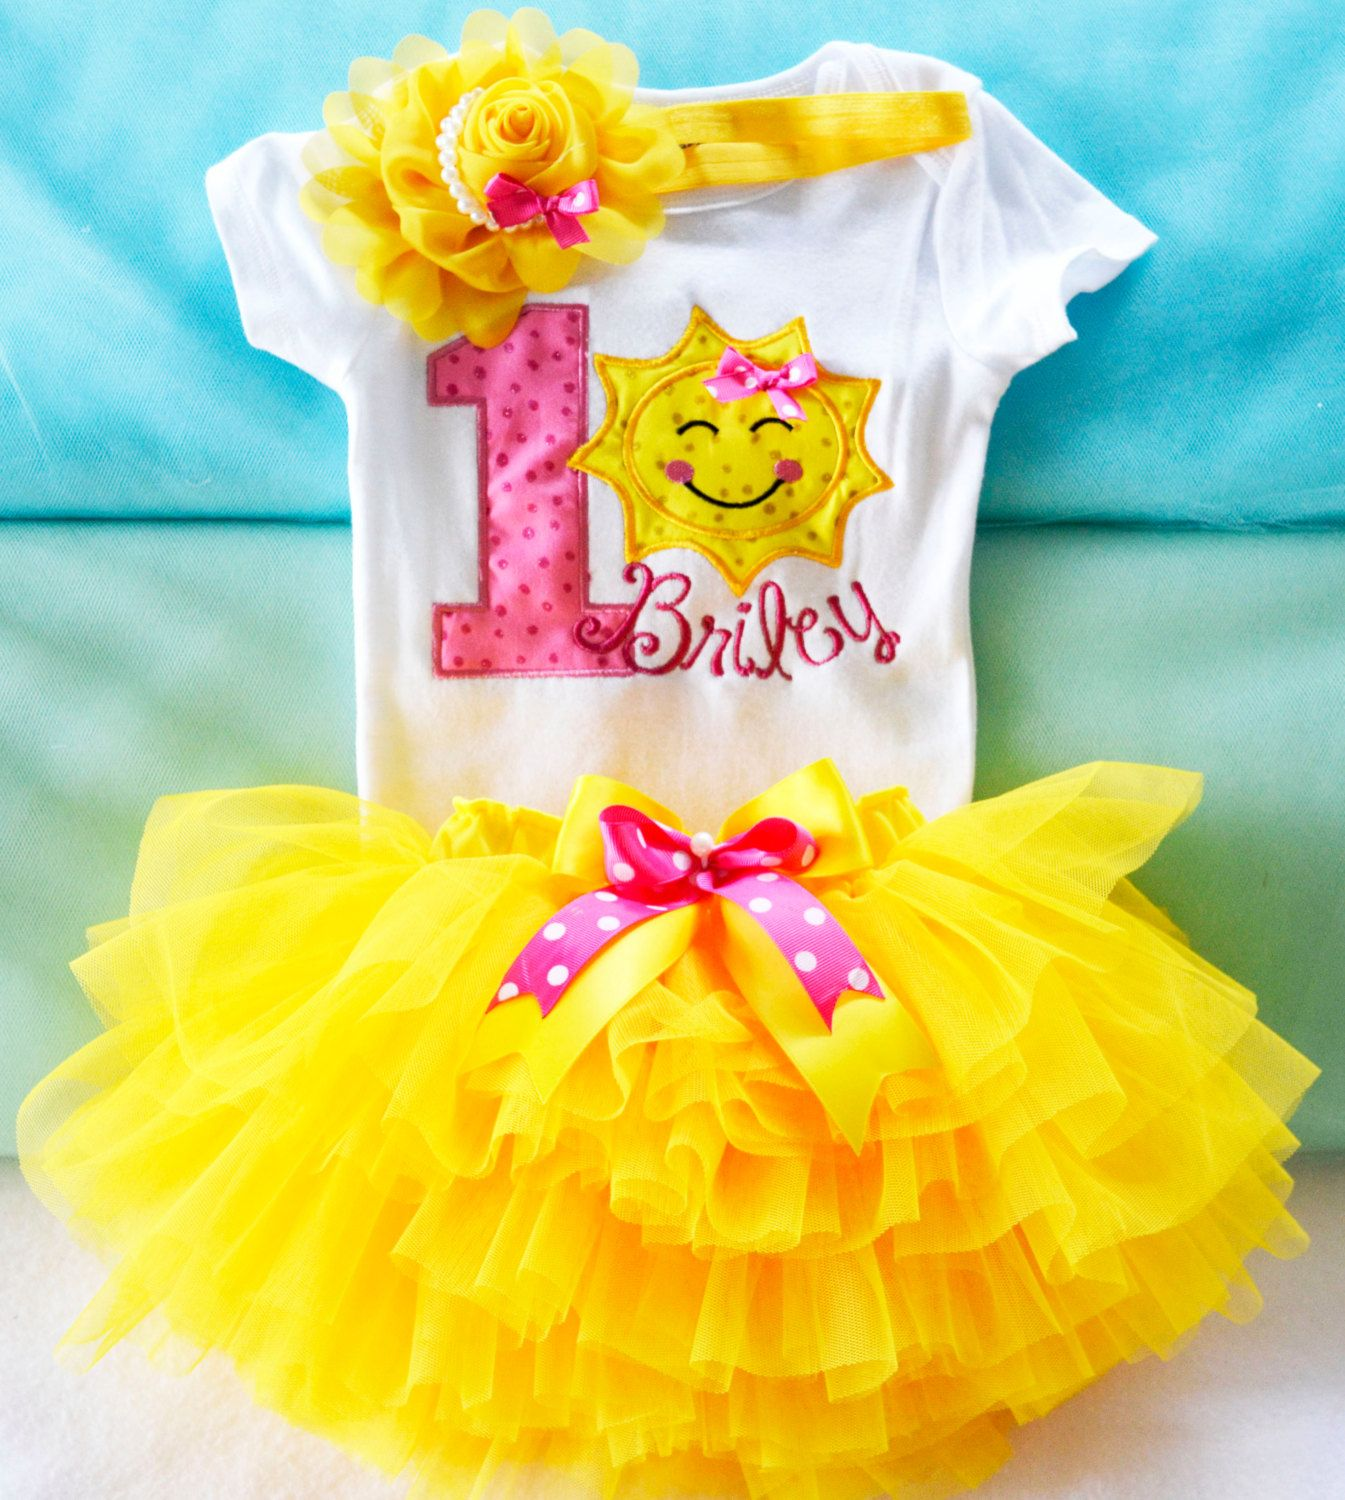 You are my sunshine 1st birthday outfit,Girls Yellow Sun